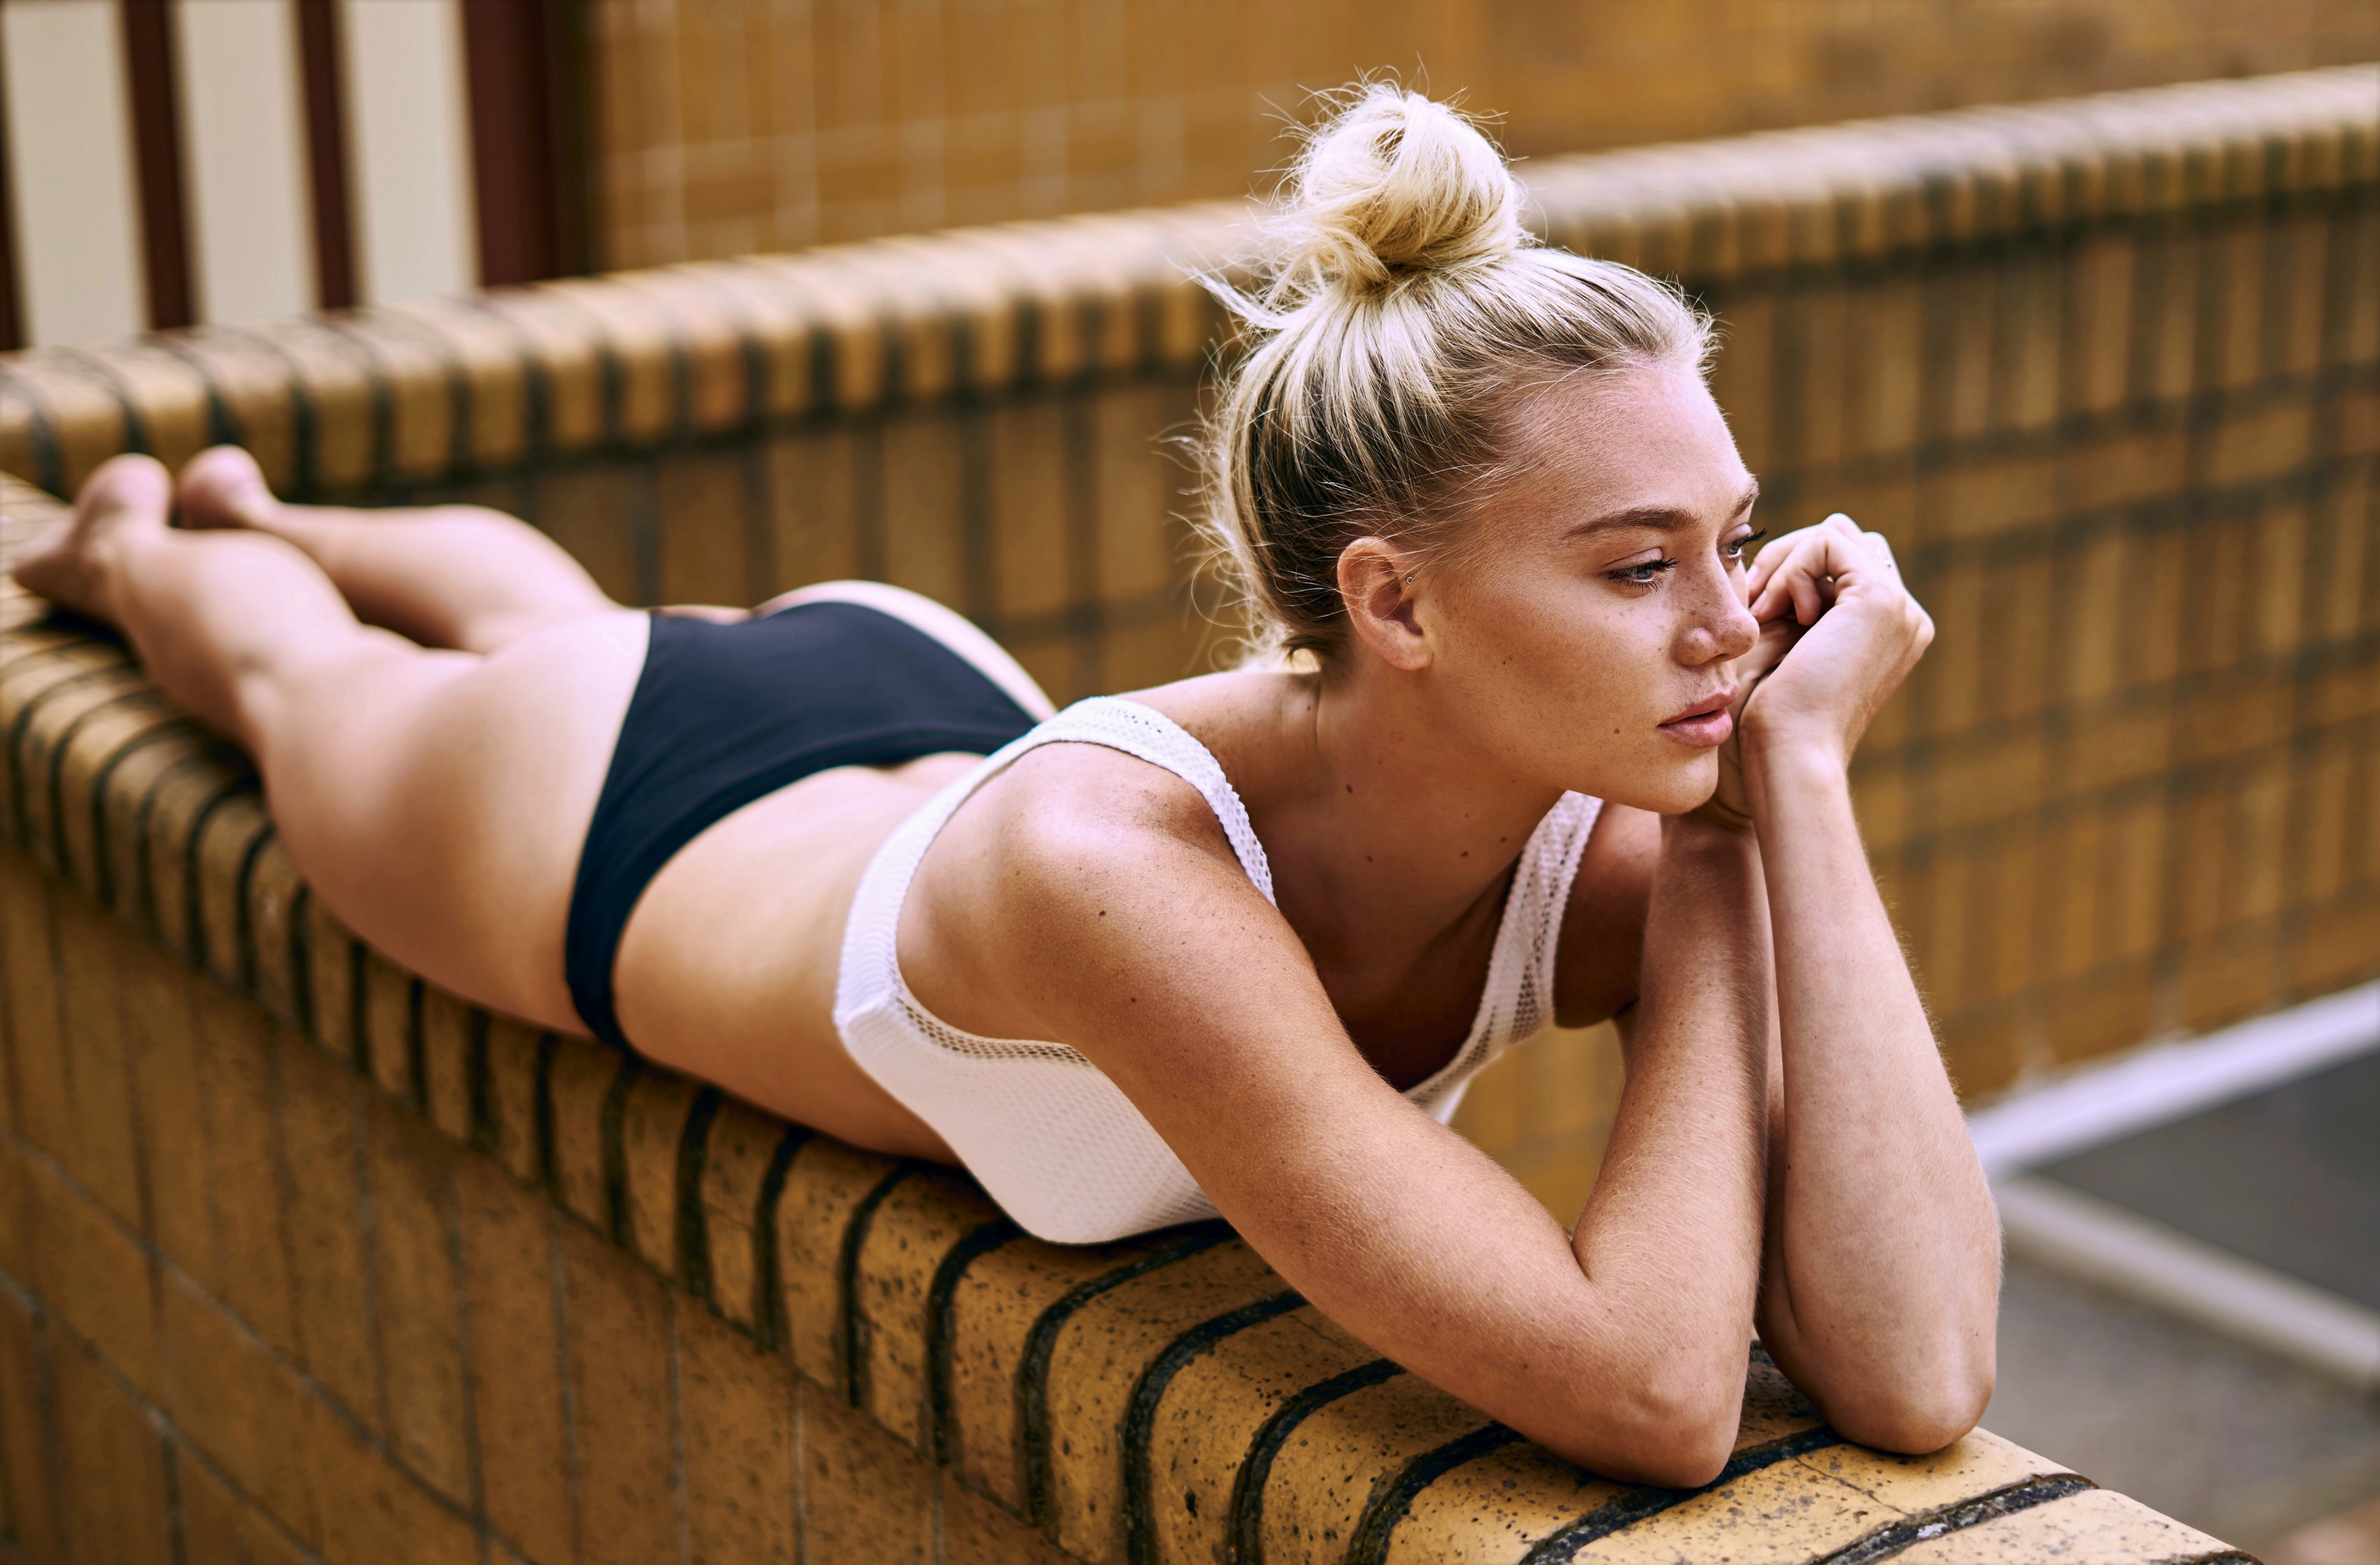 girl with blond hair pulled up wearing white bra and black panties lying on brick wall hands under chin